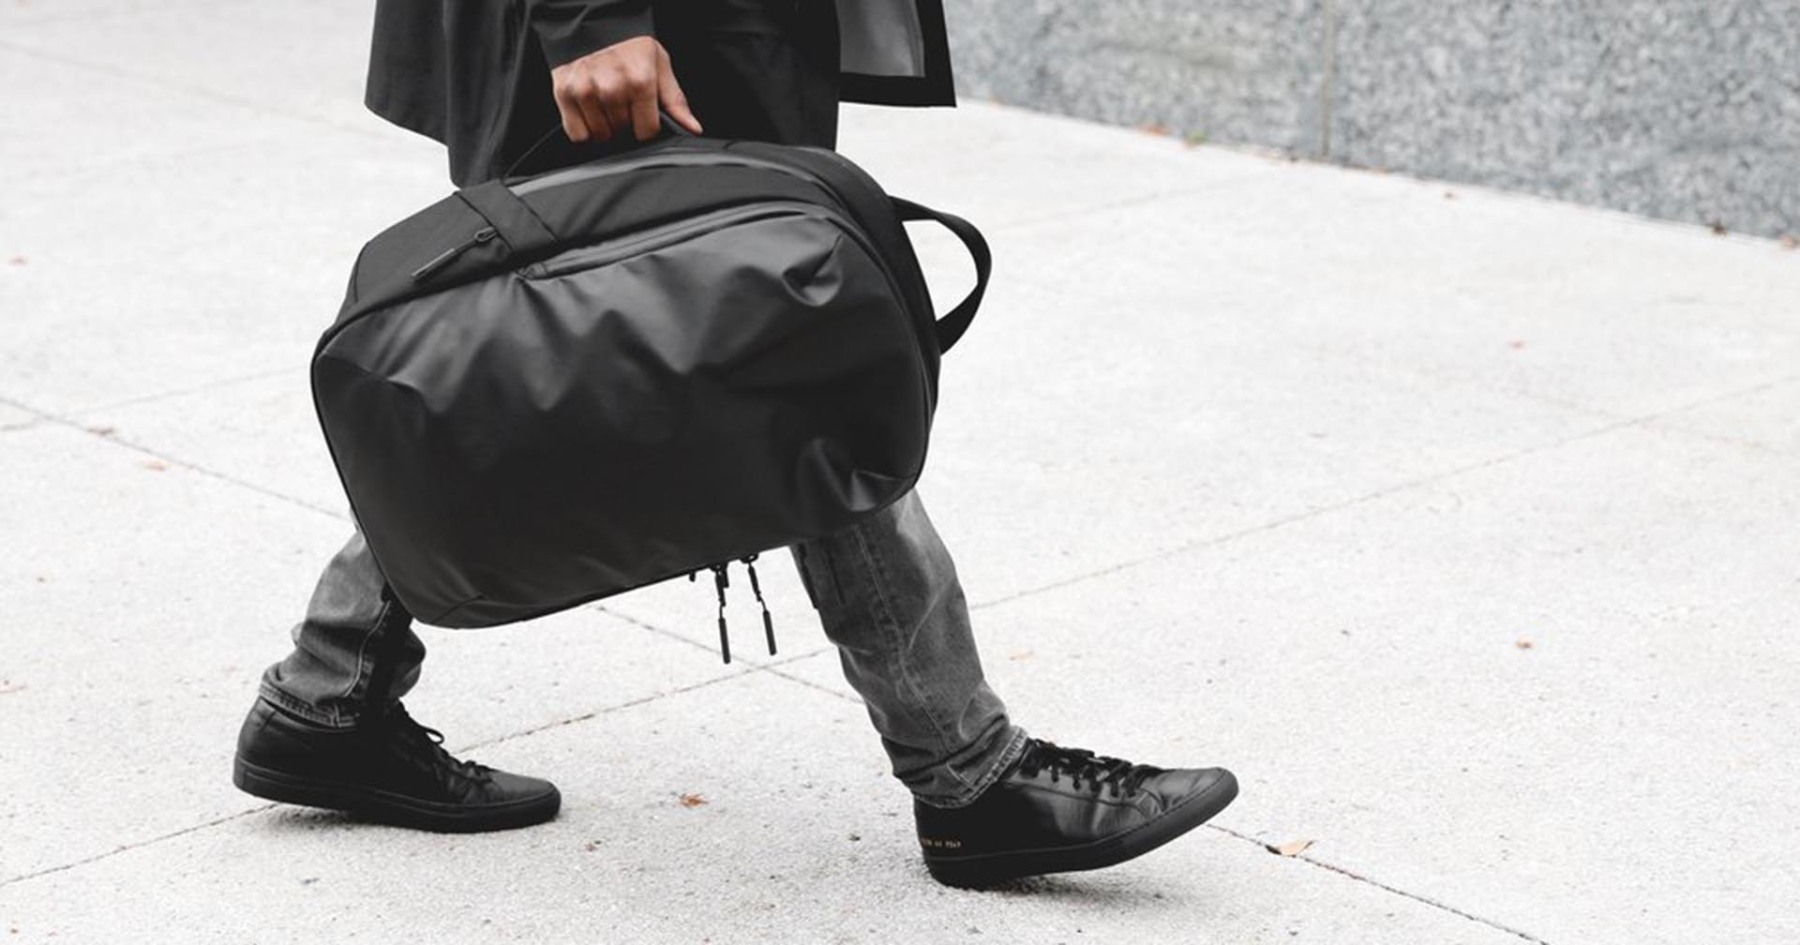 Aer's New Collection of Workaday Bags Is Bringing Sexy Back(packs)